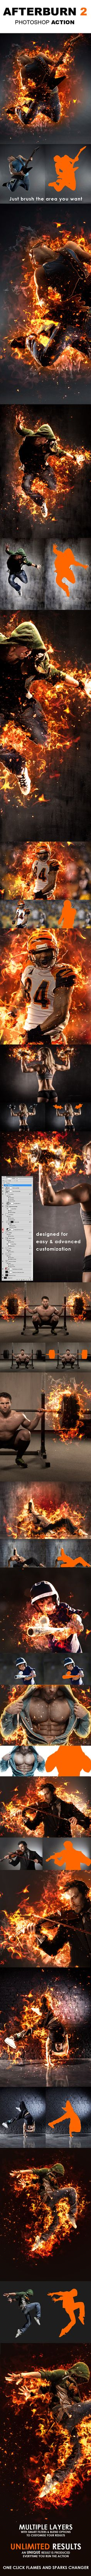 Buy AfterBurn 2 Photoshop Action by Artorius on GraphicRiver. Watch video tutorial AfterBurn 2 Part of the Afterburn series, AfterBurn 2 is a Photoshop action that will add sophis. Best Photoshop Actions, Cool Photoshop, Effects Photoshop, Photoshop Photos, Photoshop Brushes, Photoshop Design, Photoshop Tutorial, Photoshop Elements, Fotografia Tutorial